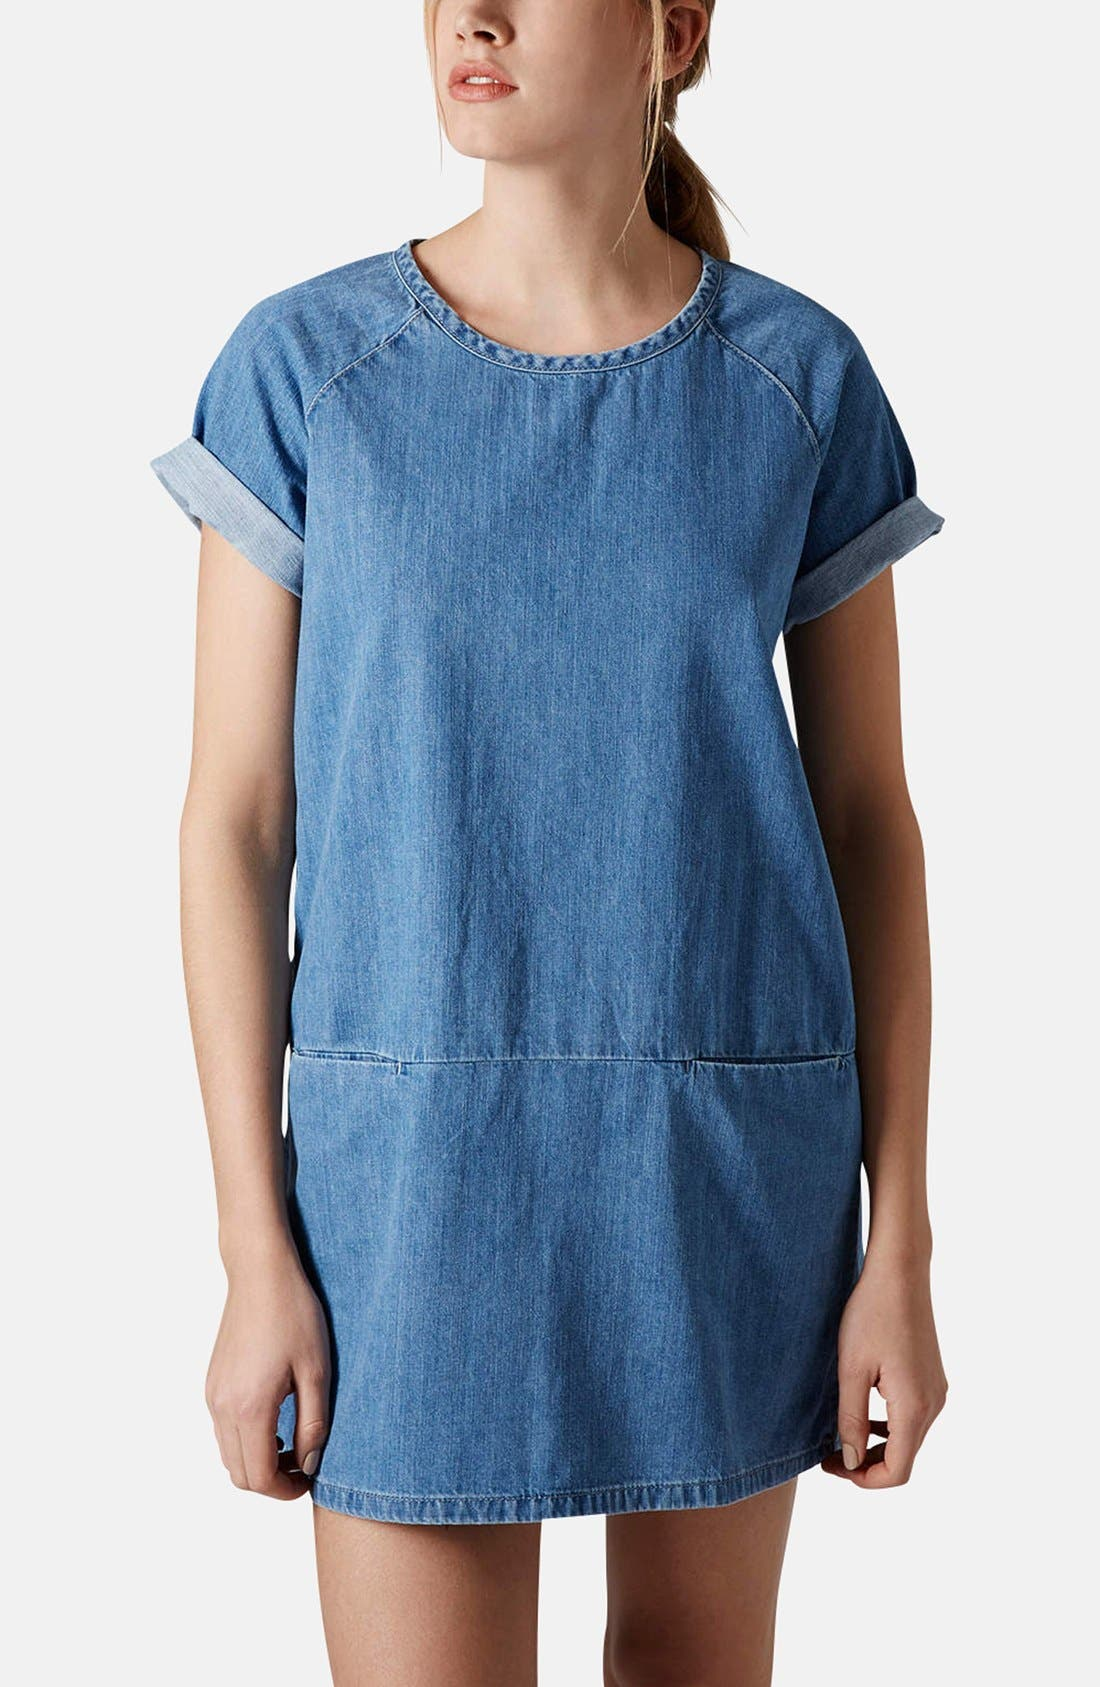 Alternate Image 1 Selected - Topshop Moto Denim T-Shirt Dress (Petite)